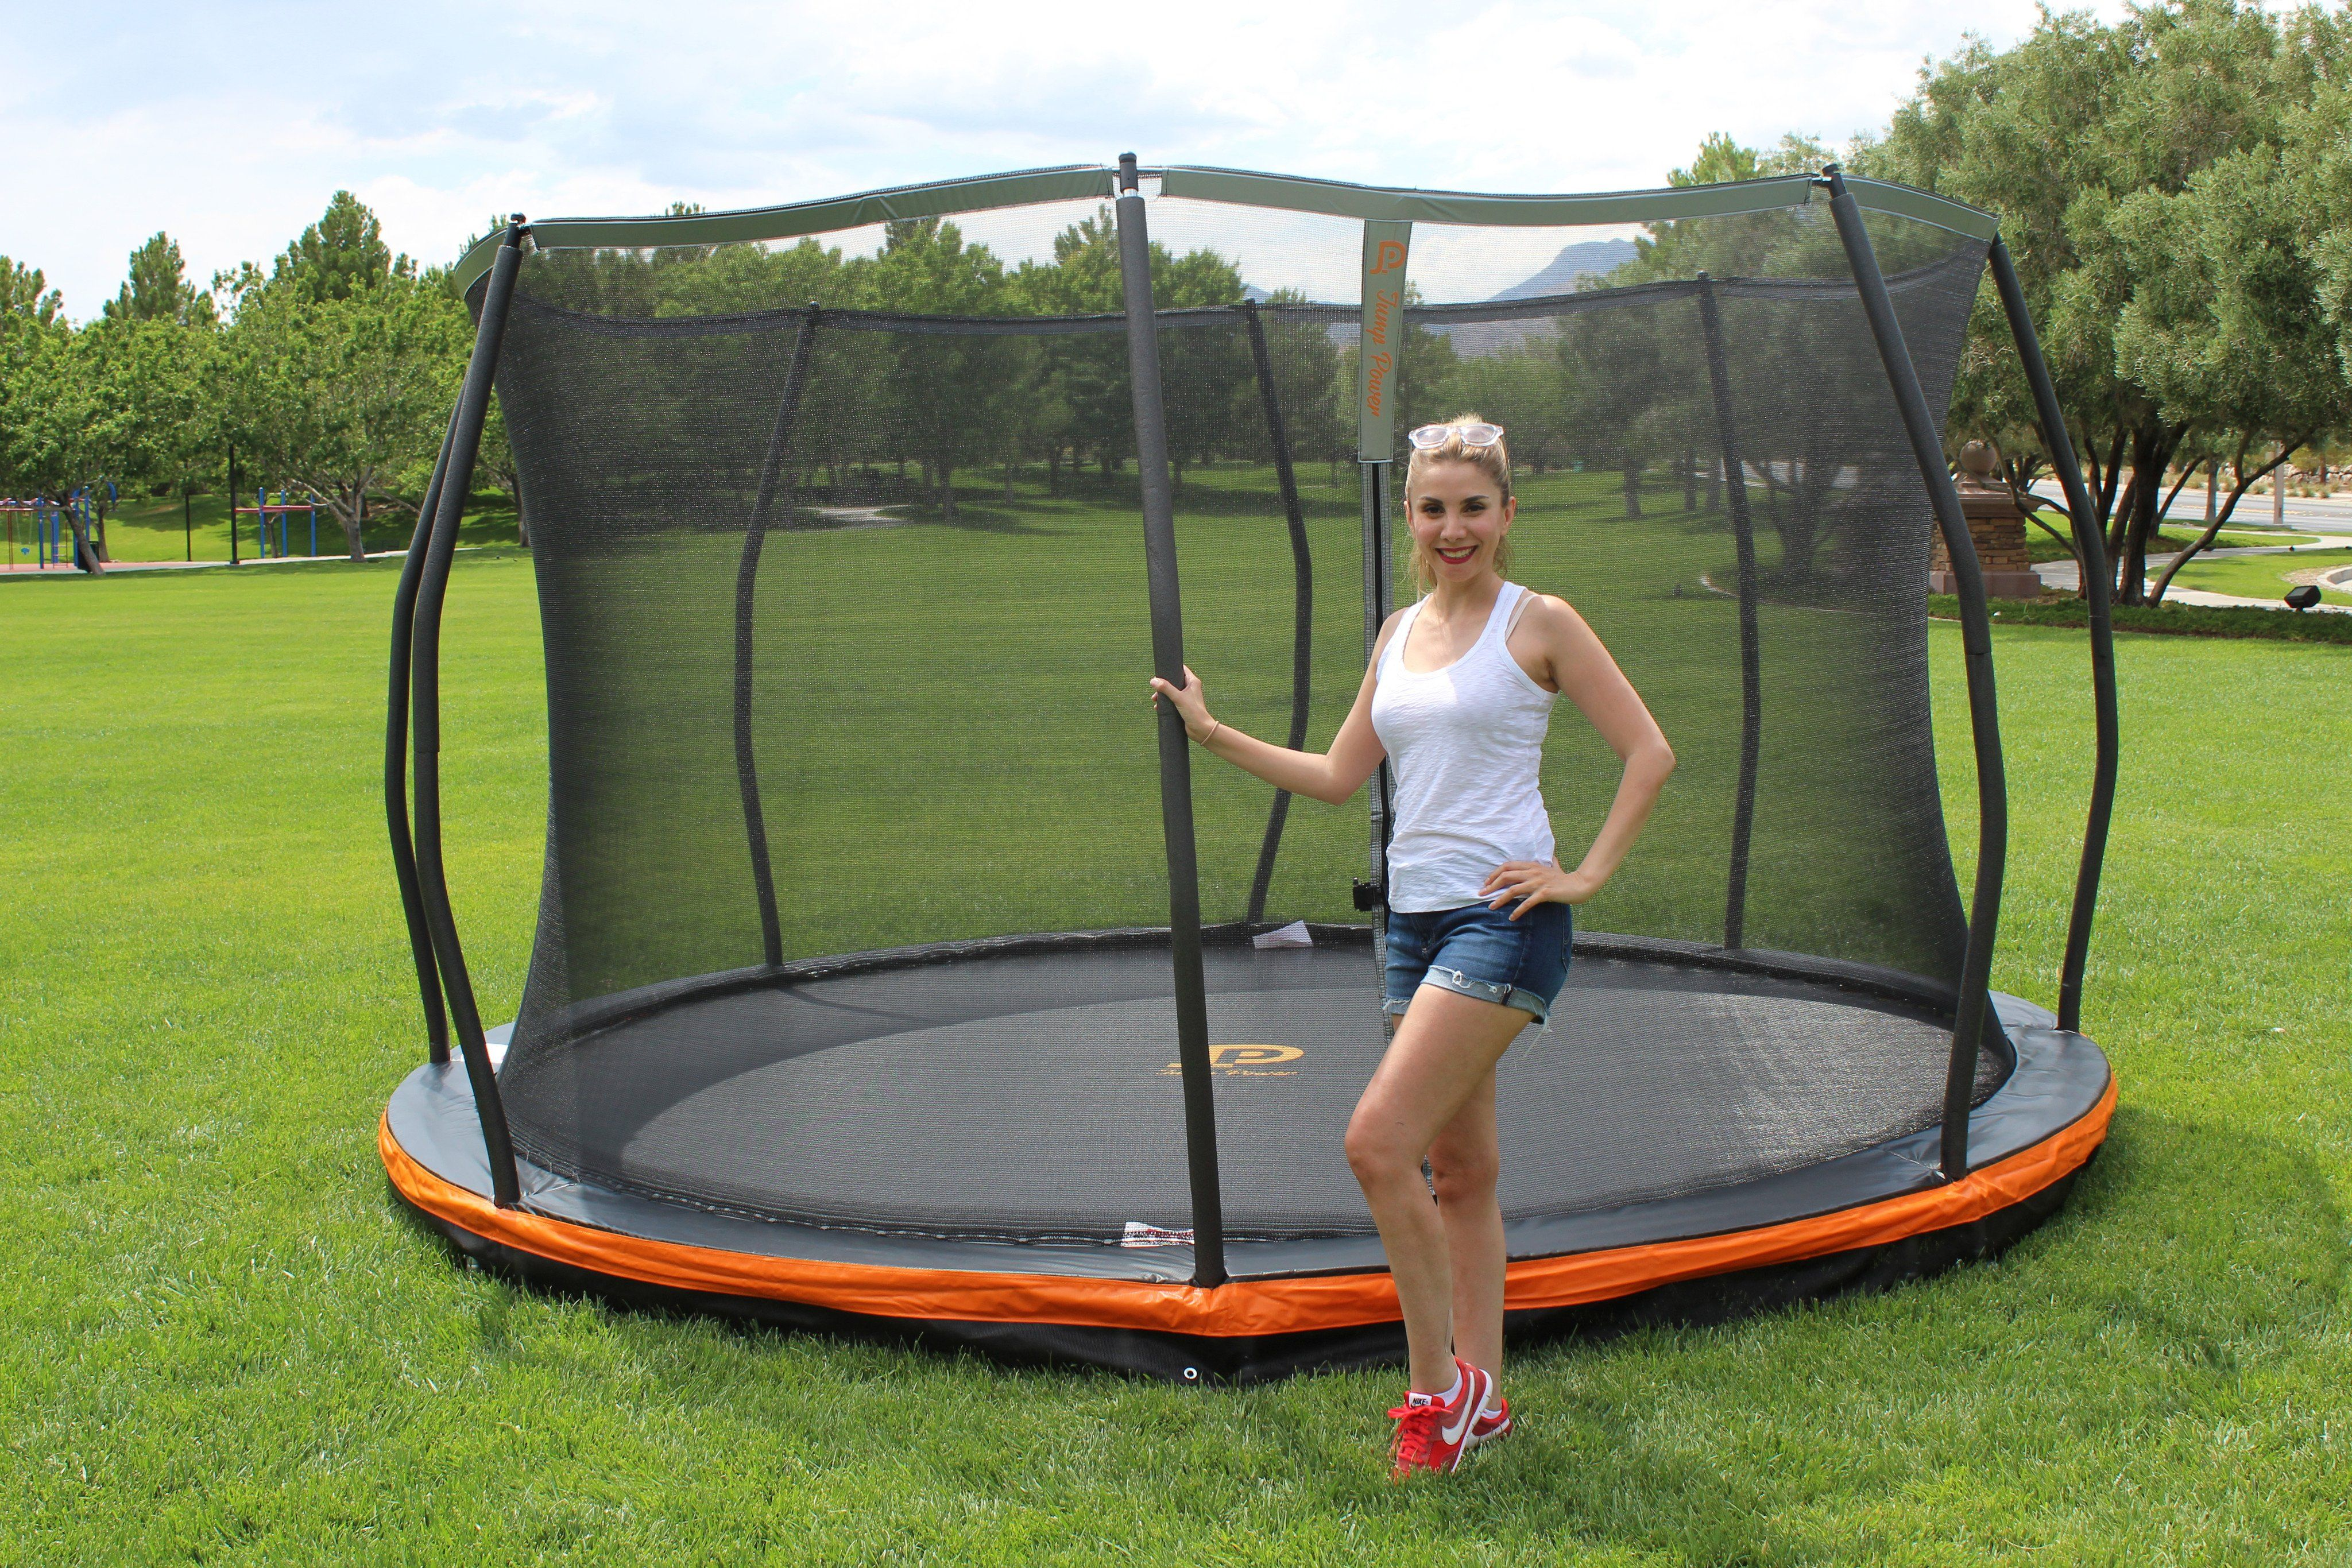 13ft In Ground Trampoline Safety Net Combo European Design In Ground Trampoline Trampoline Safety Net Trampoline Safety